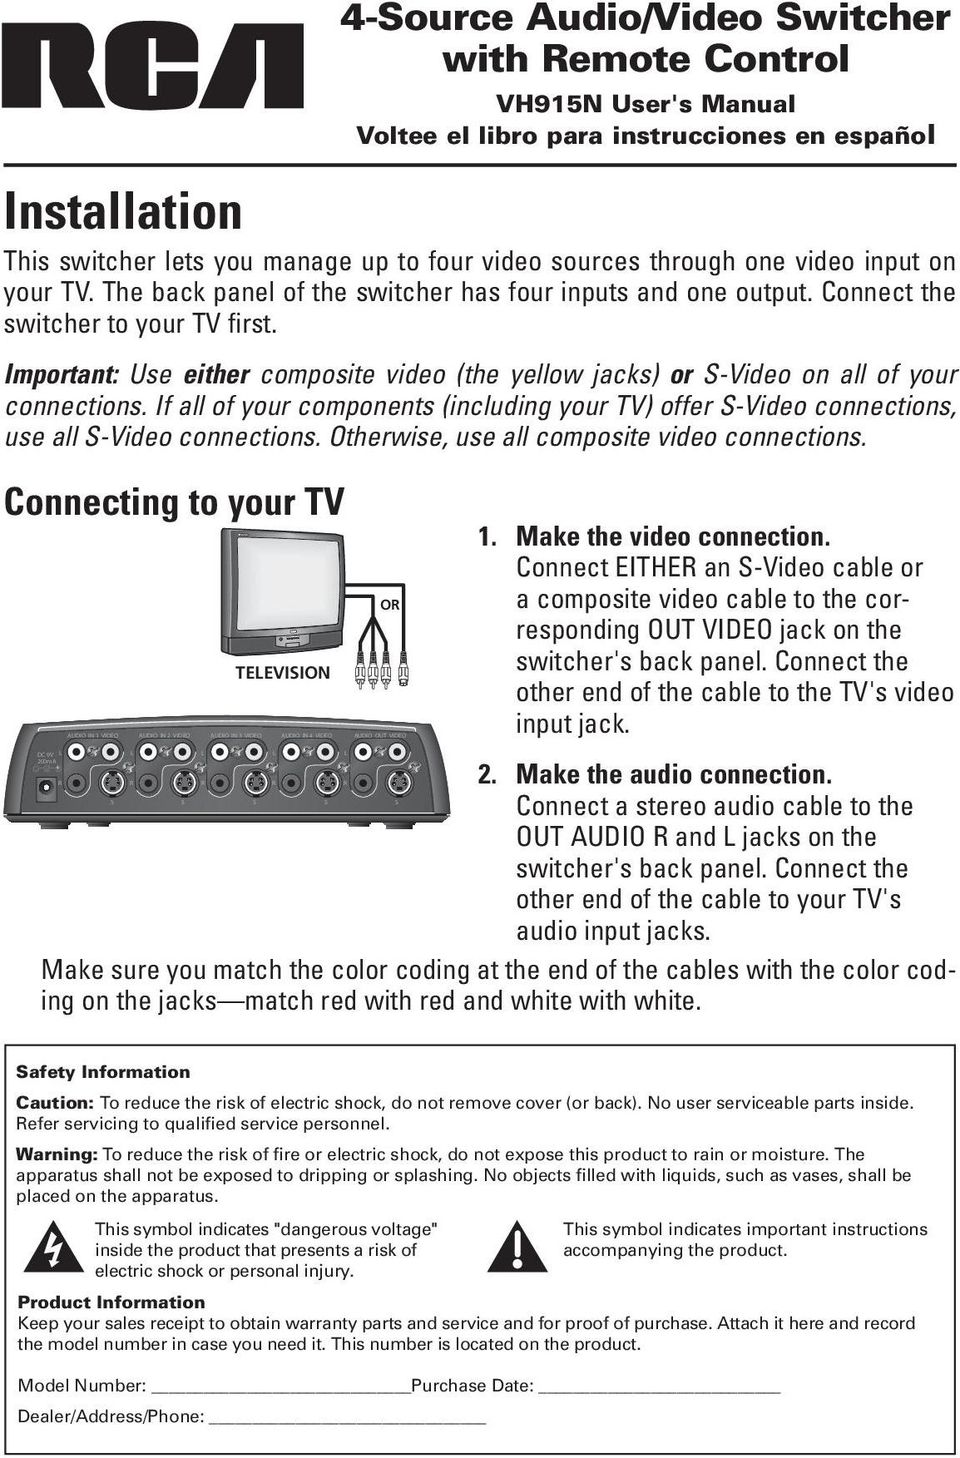 Important: Use either composite video (the yellow jacks) or -Video on all of your connections. If all of your components (including your TV) offer -Video connections, use all -Video connections.